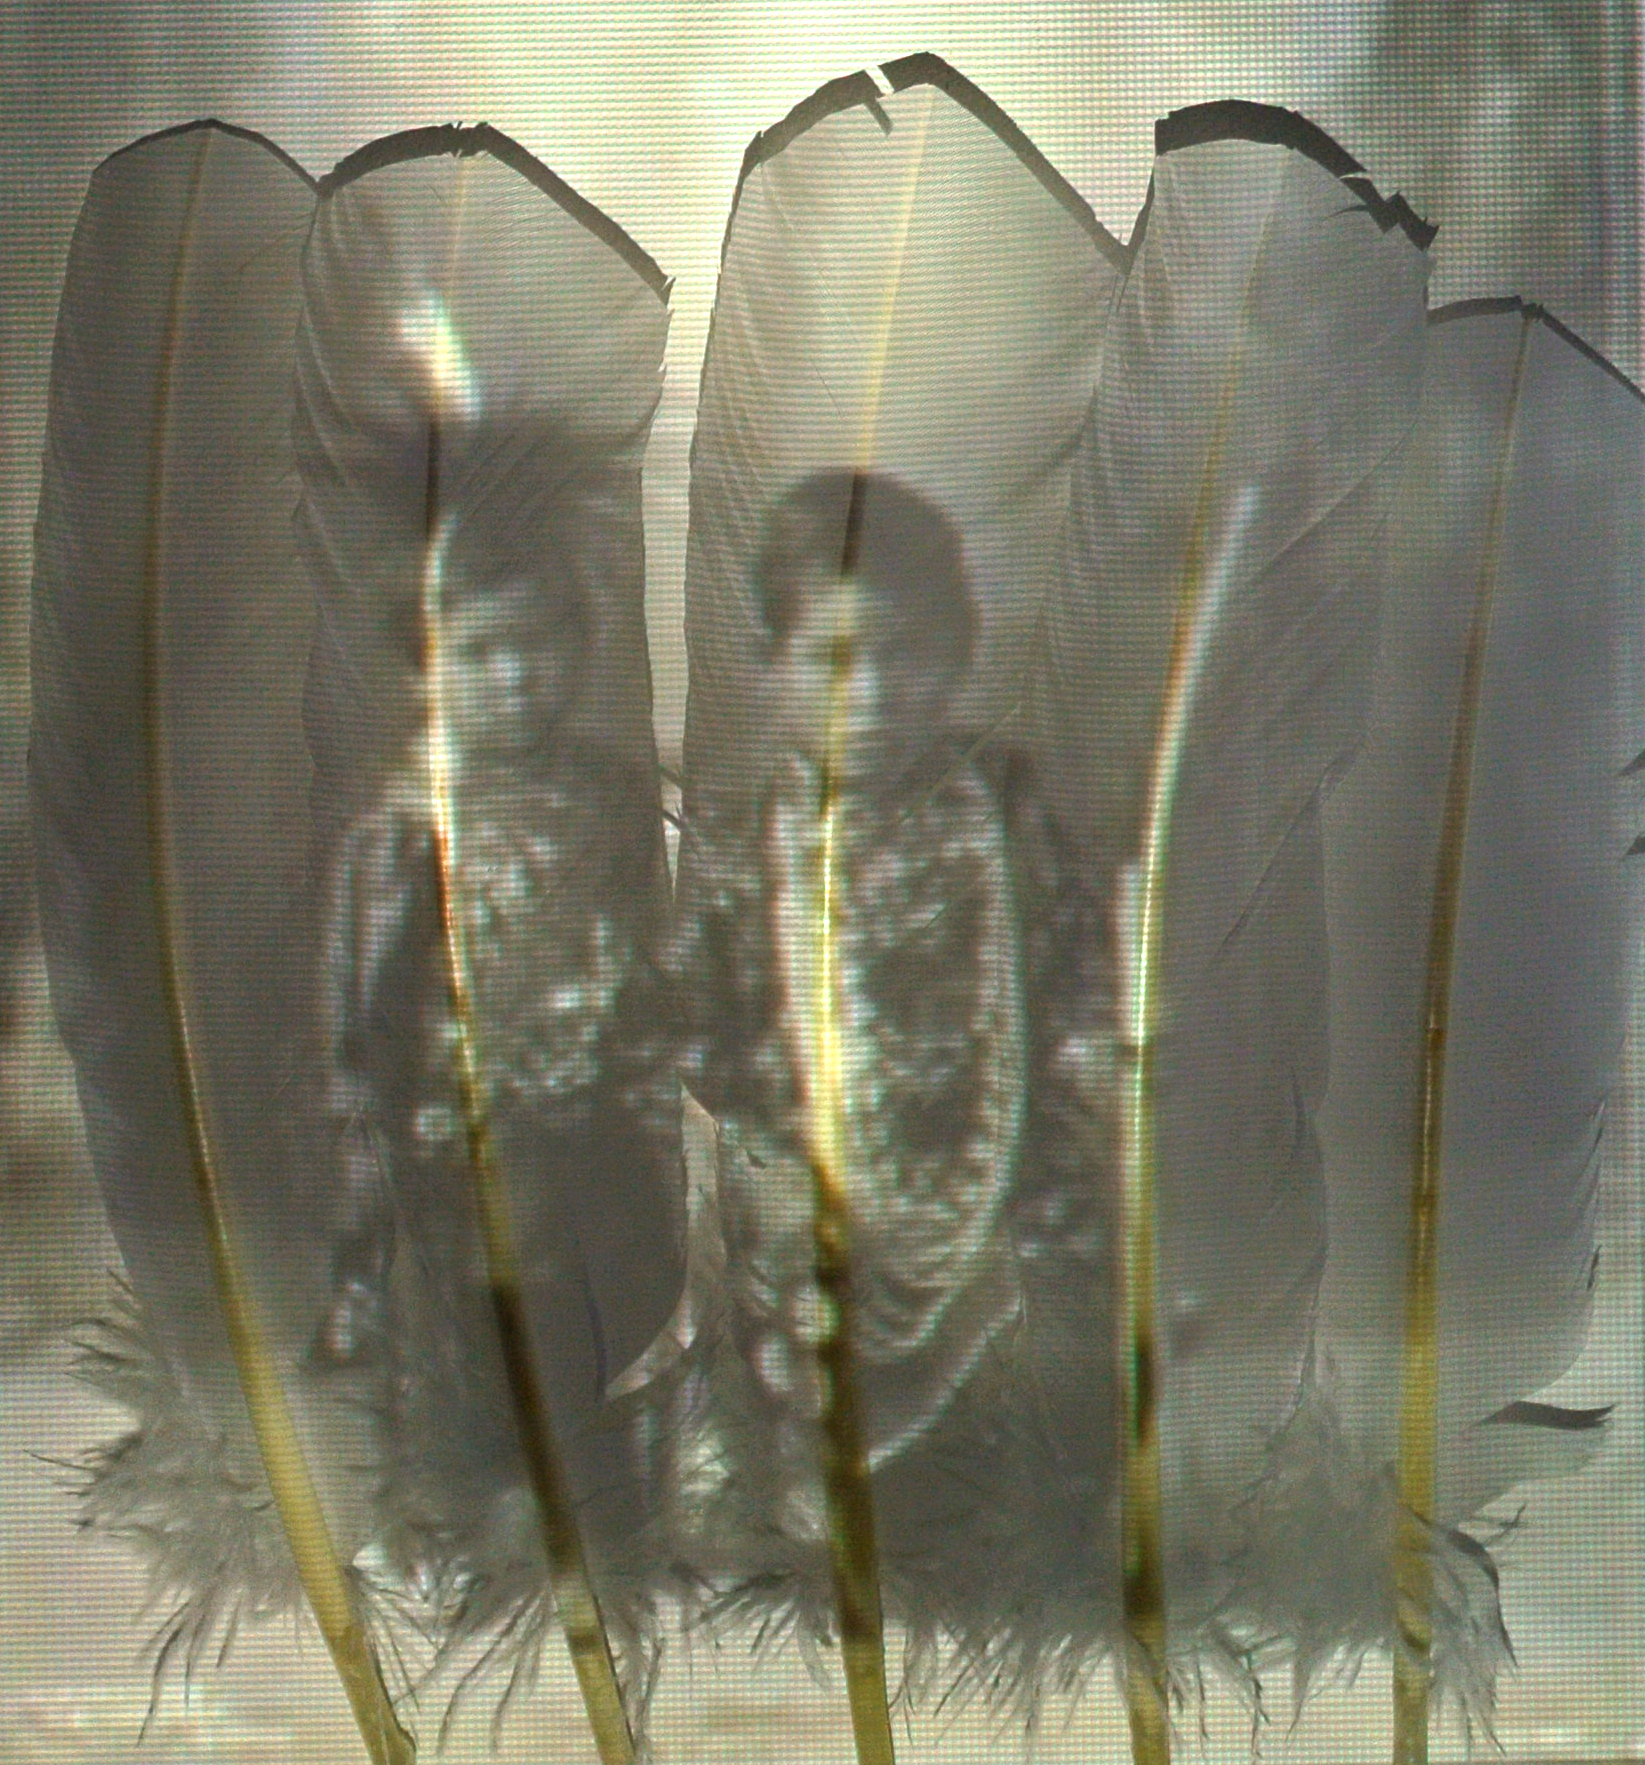 Boys behind feathers